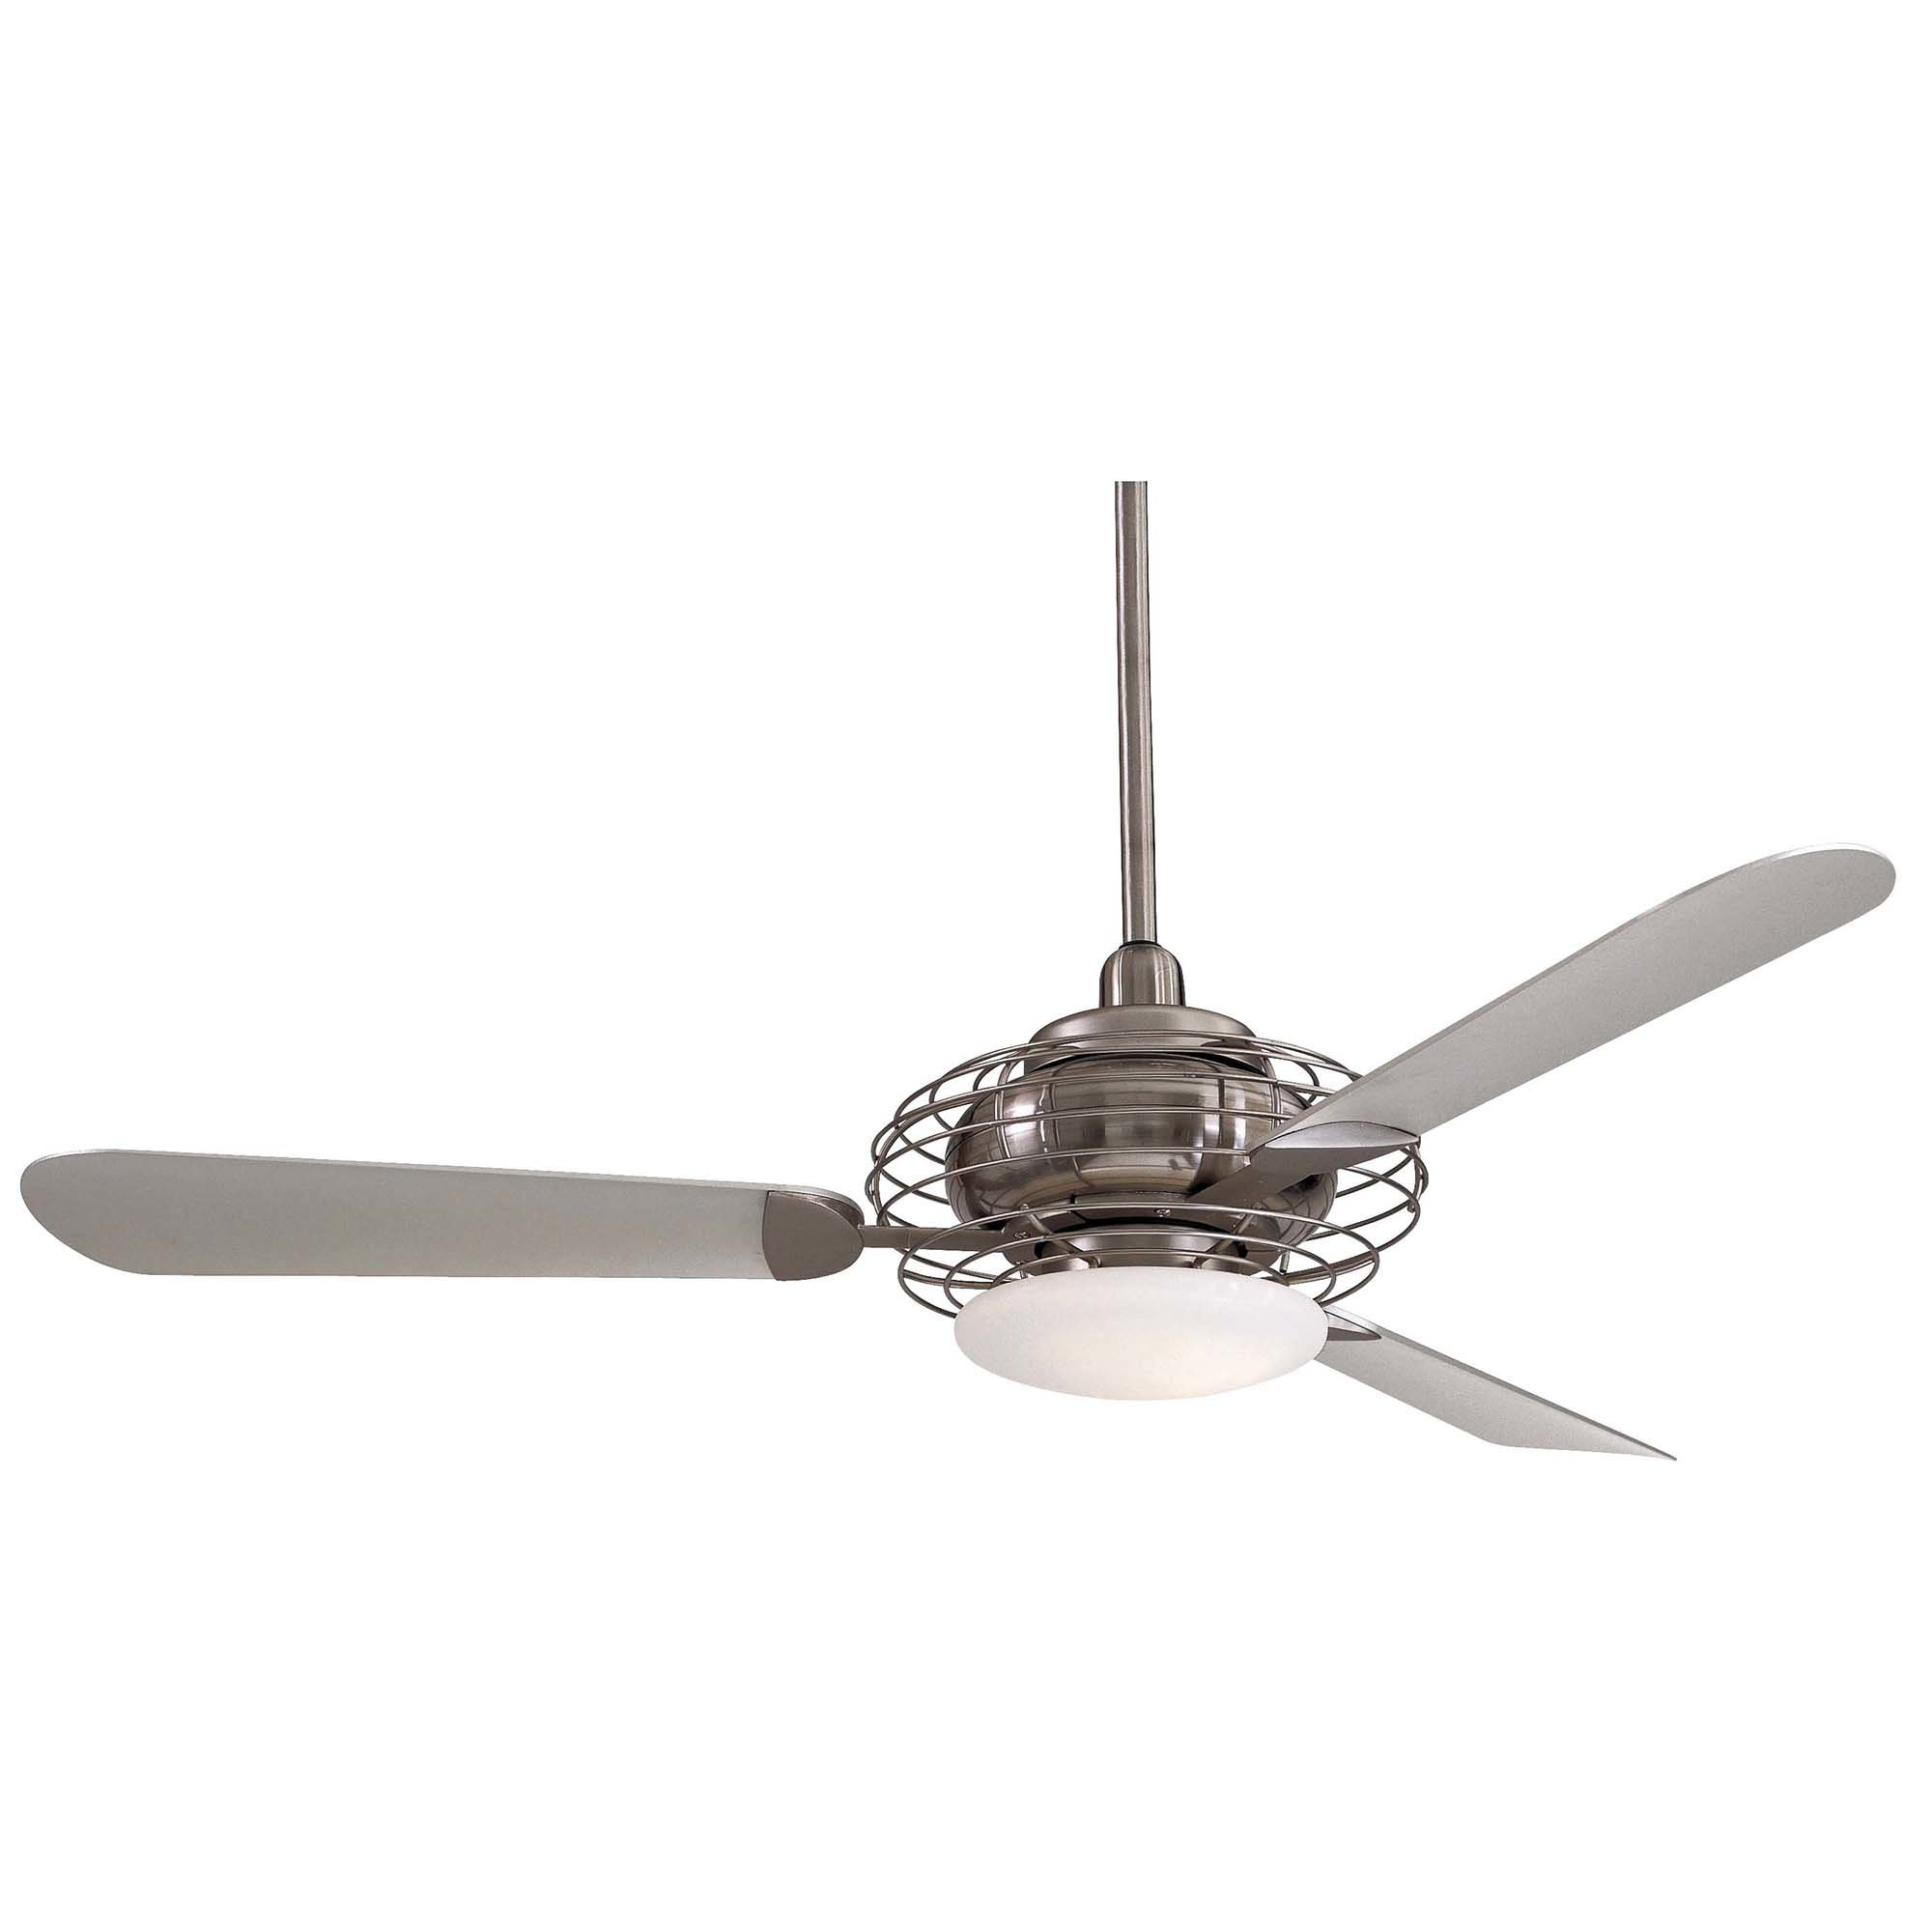 "Most Recent Nikki 3 Blade Ceiling Fans Throughout 52"" Acero Retro 3 Blade Led Ceiling Fan (View 18 of 20)"